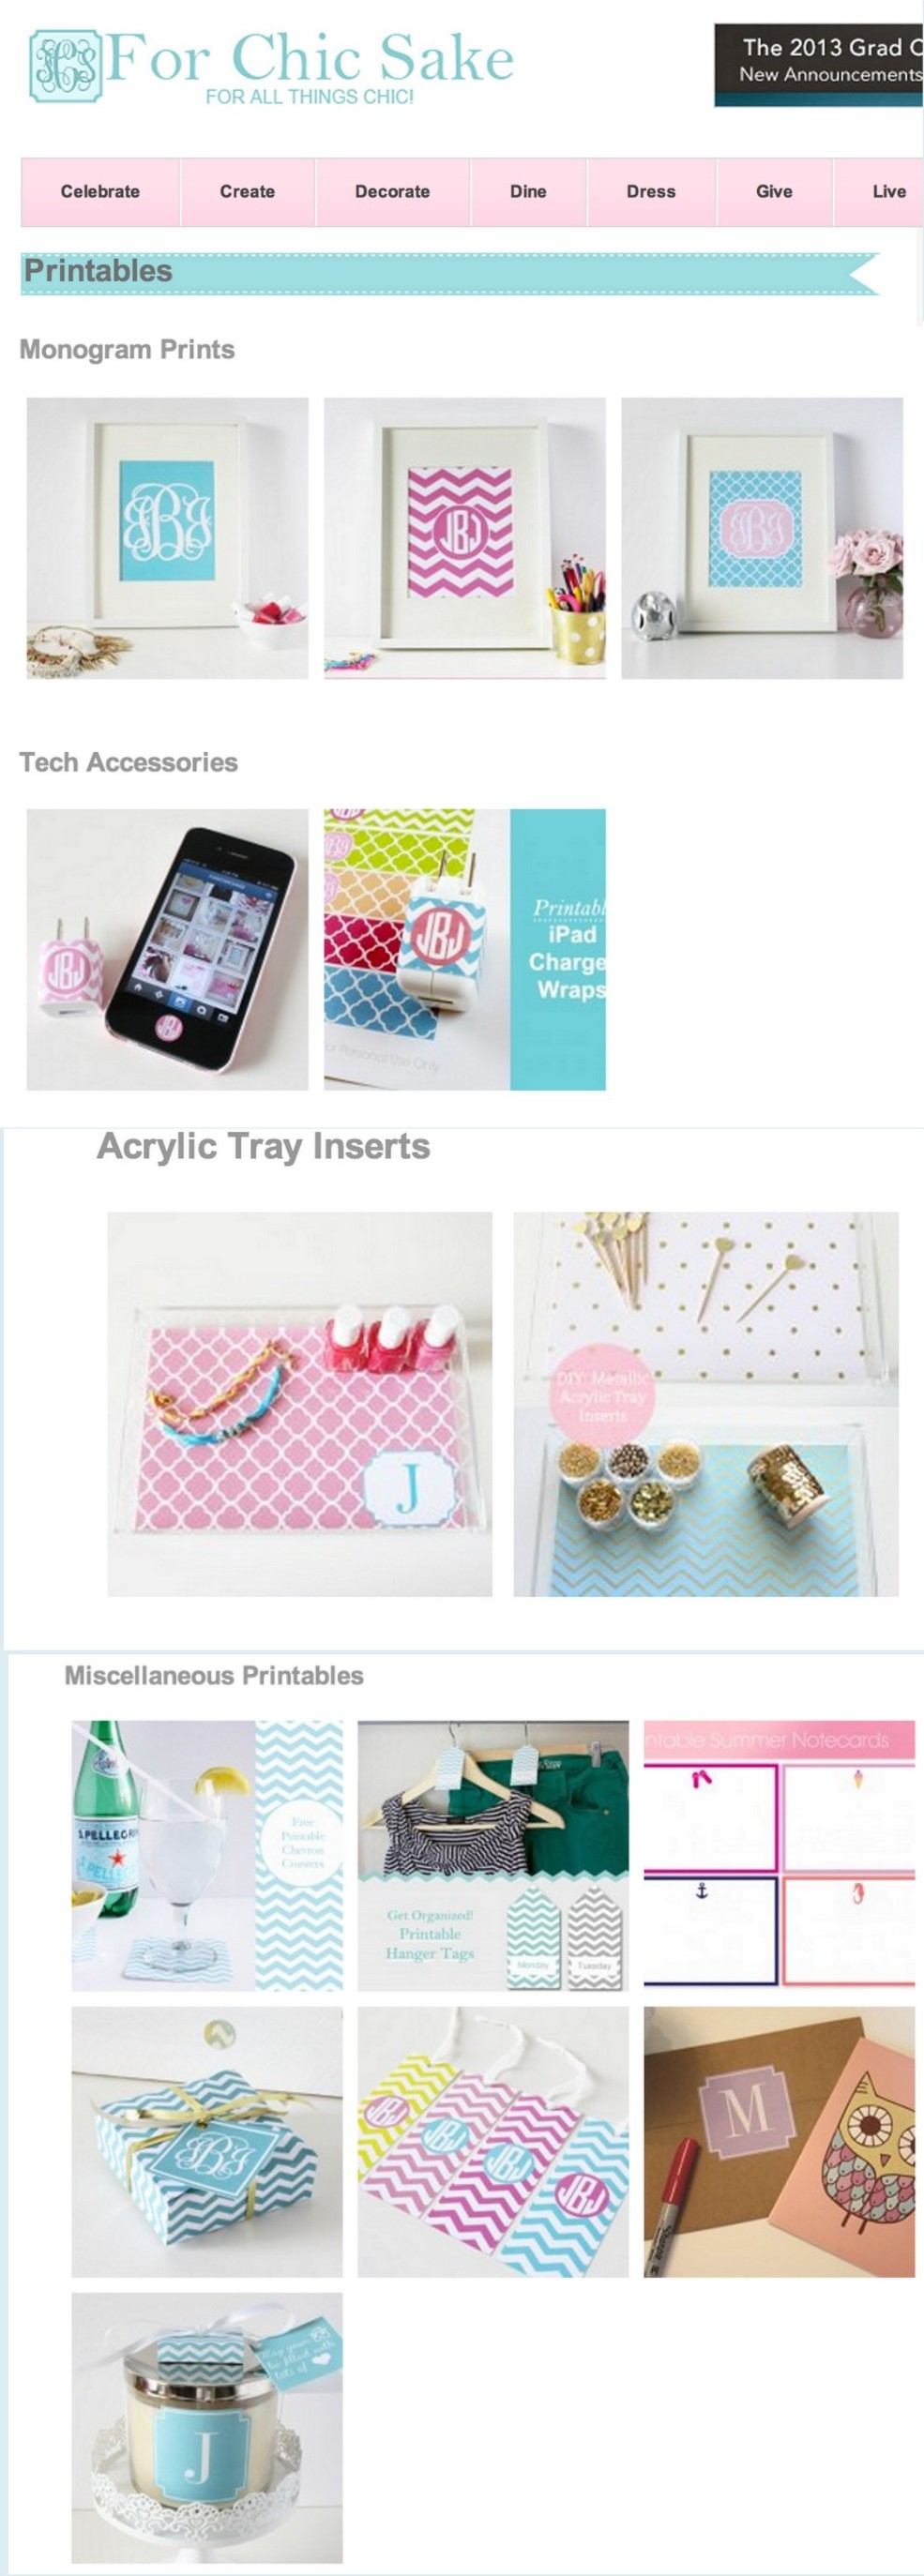 Collection of awesome free printables offered by For Chic Sake